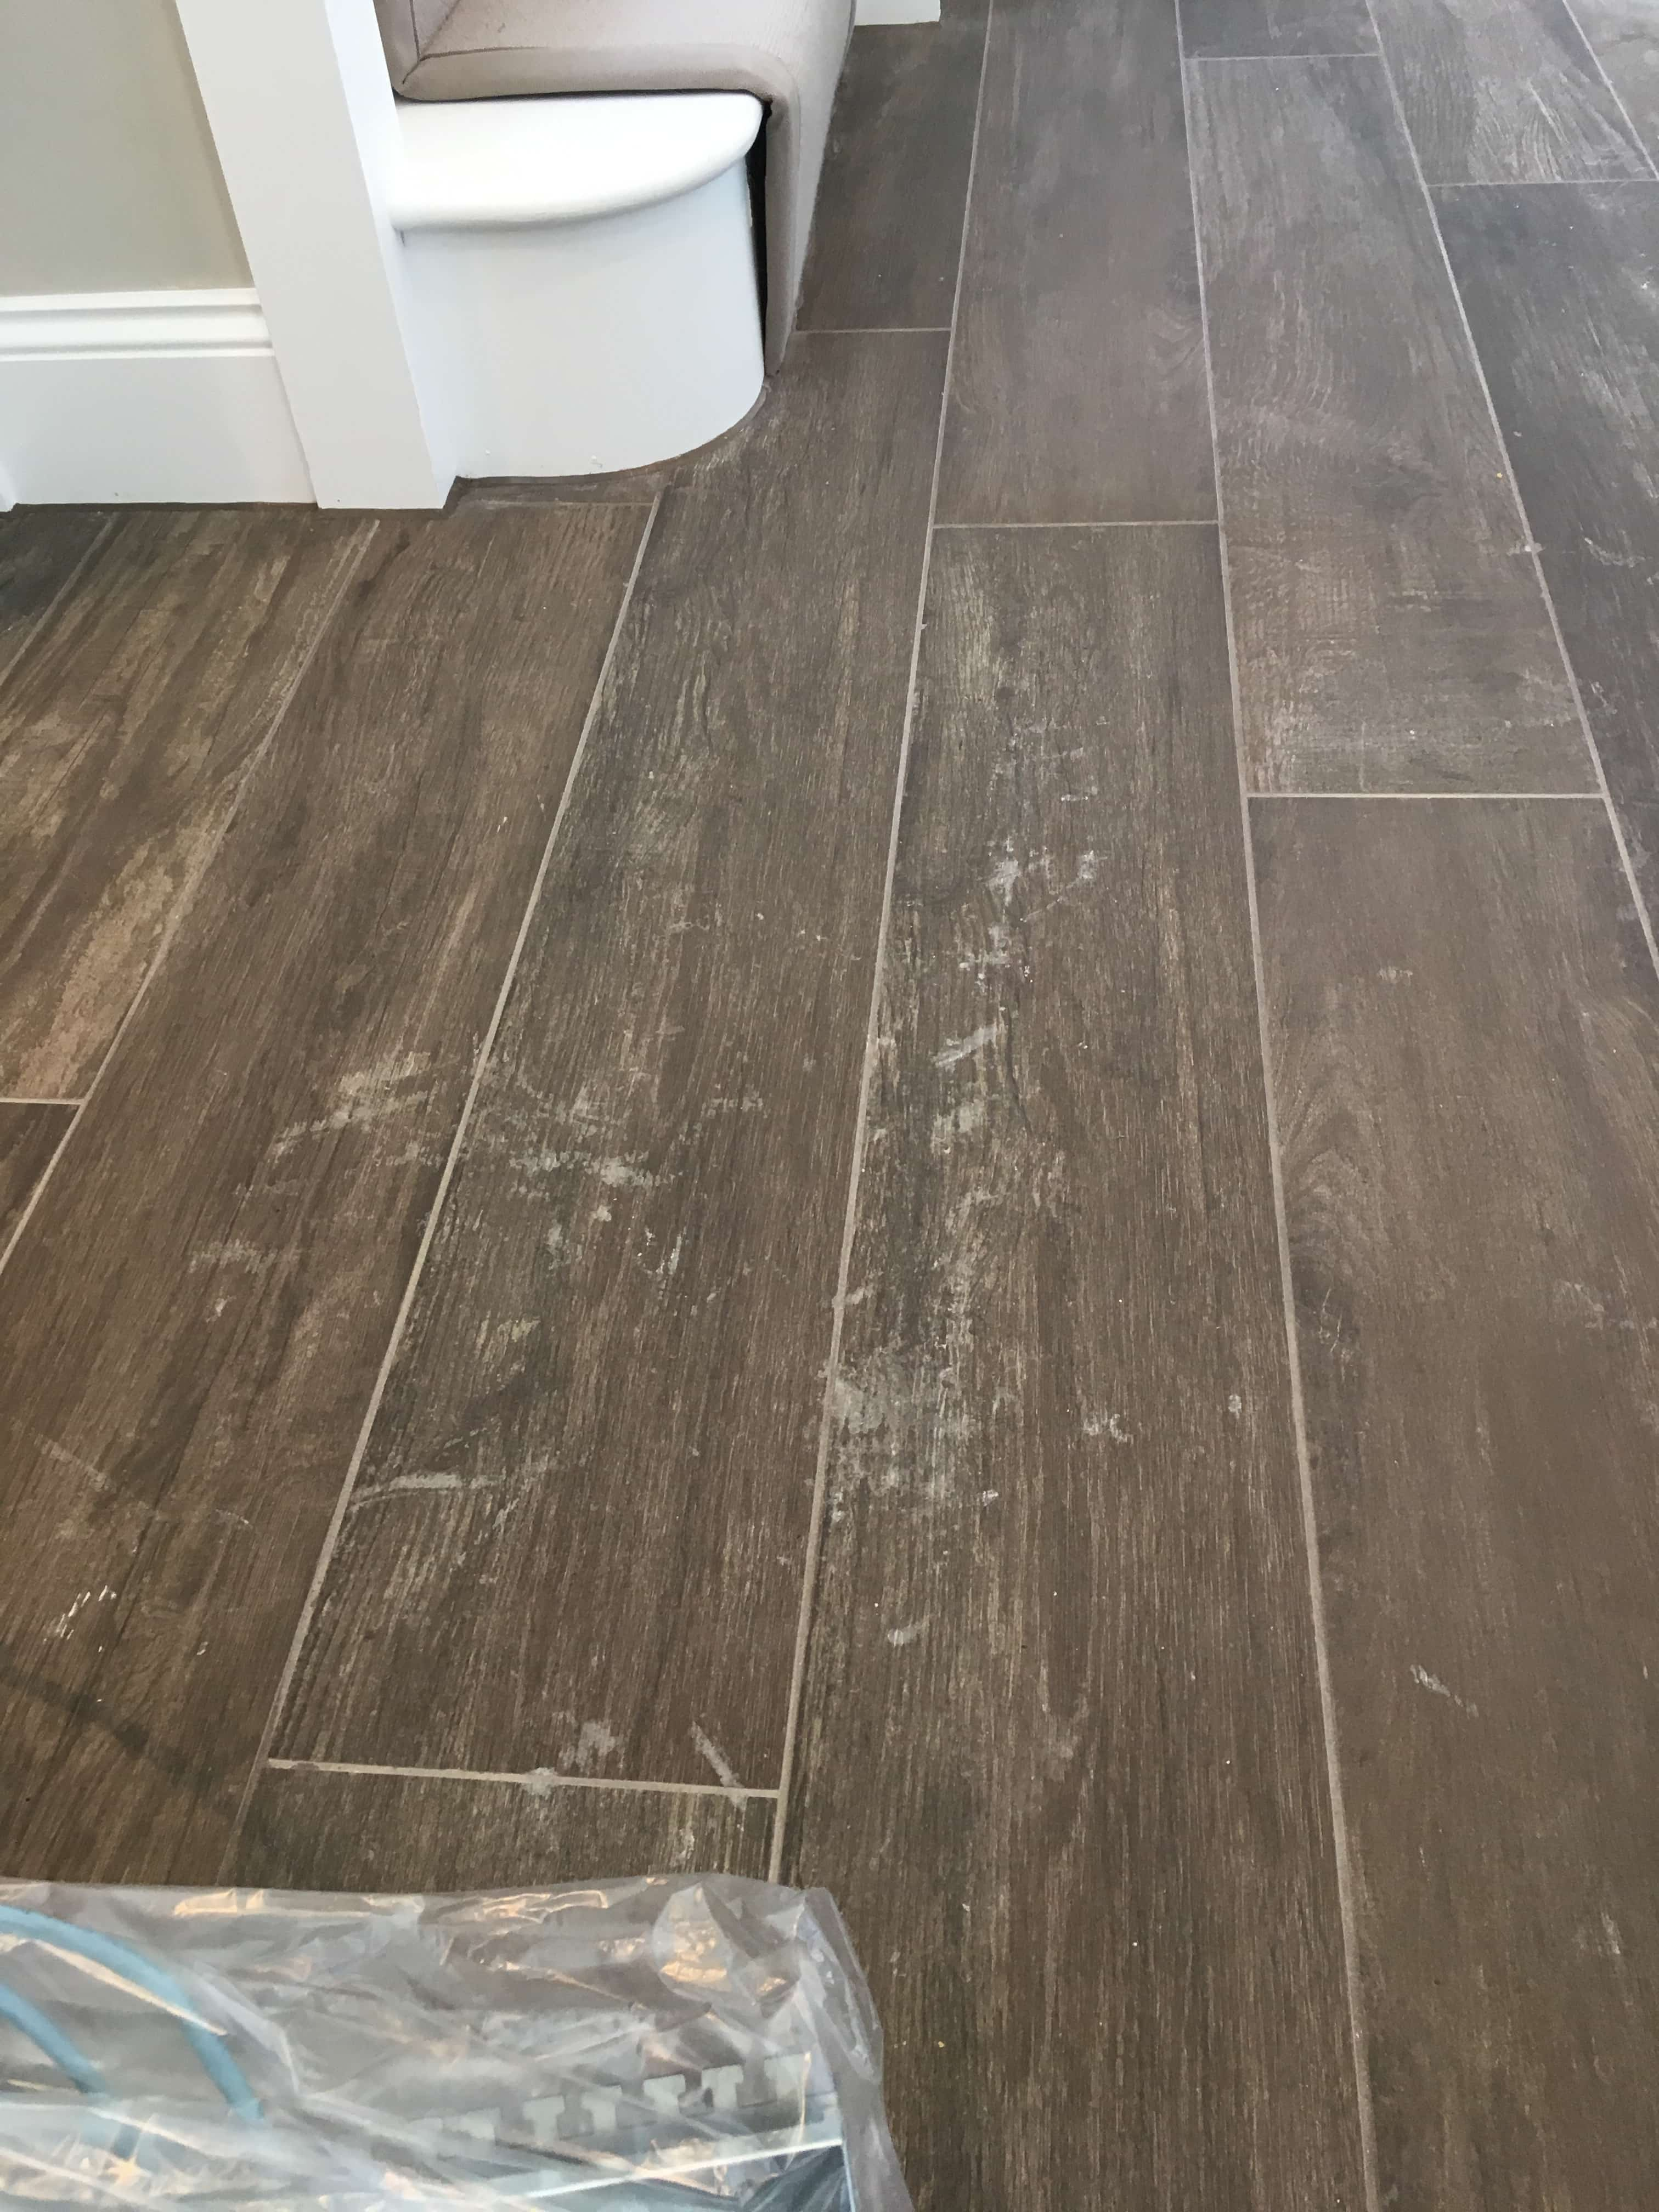 Grout Haze on Wood Effect Ceramic Tiles Before Removal Guildford